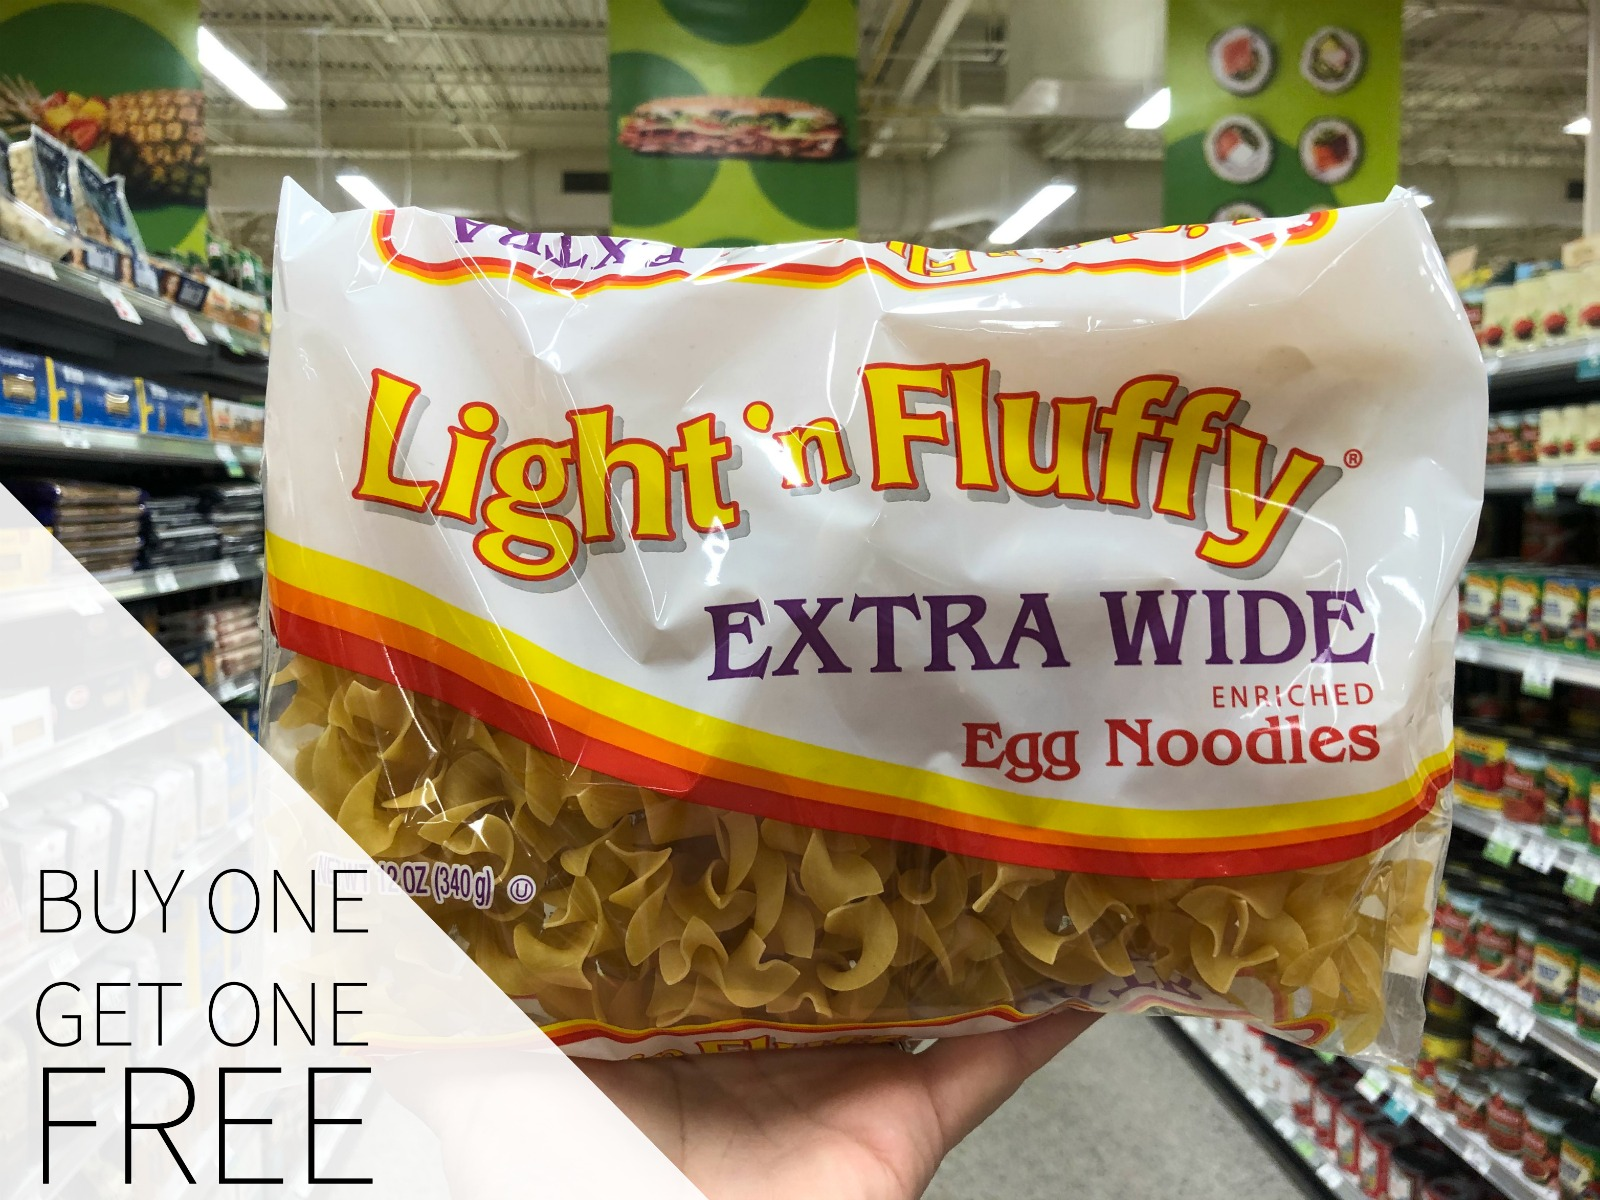 Light 'n Fluffy® Egg Noodles Are BOGO This Week At Publix - Stock Your Pantry! on I Heart Publix